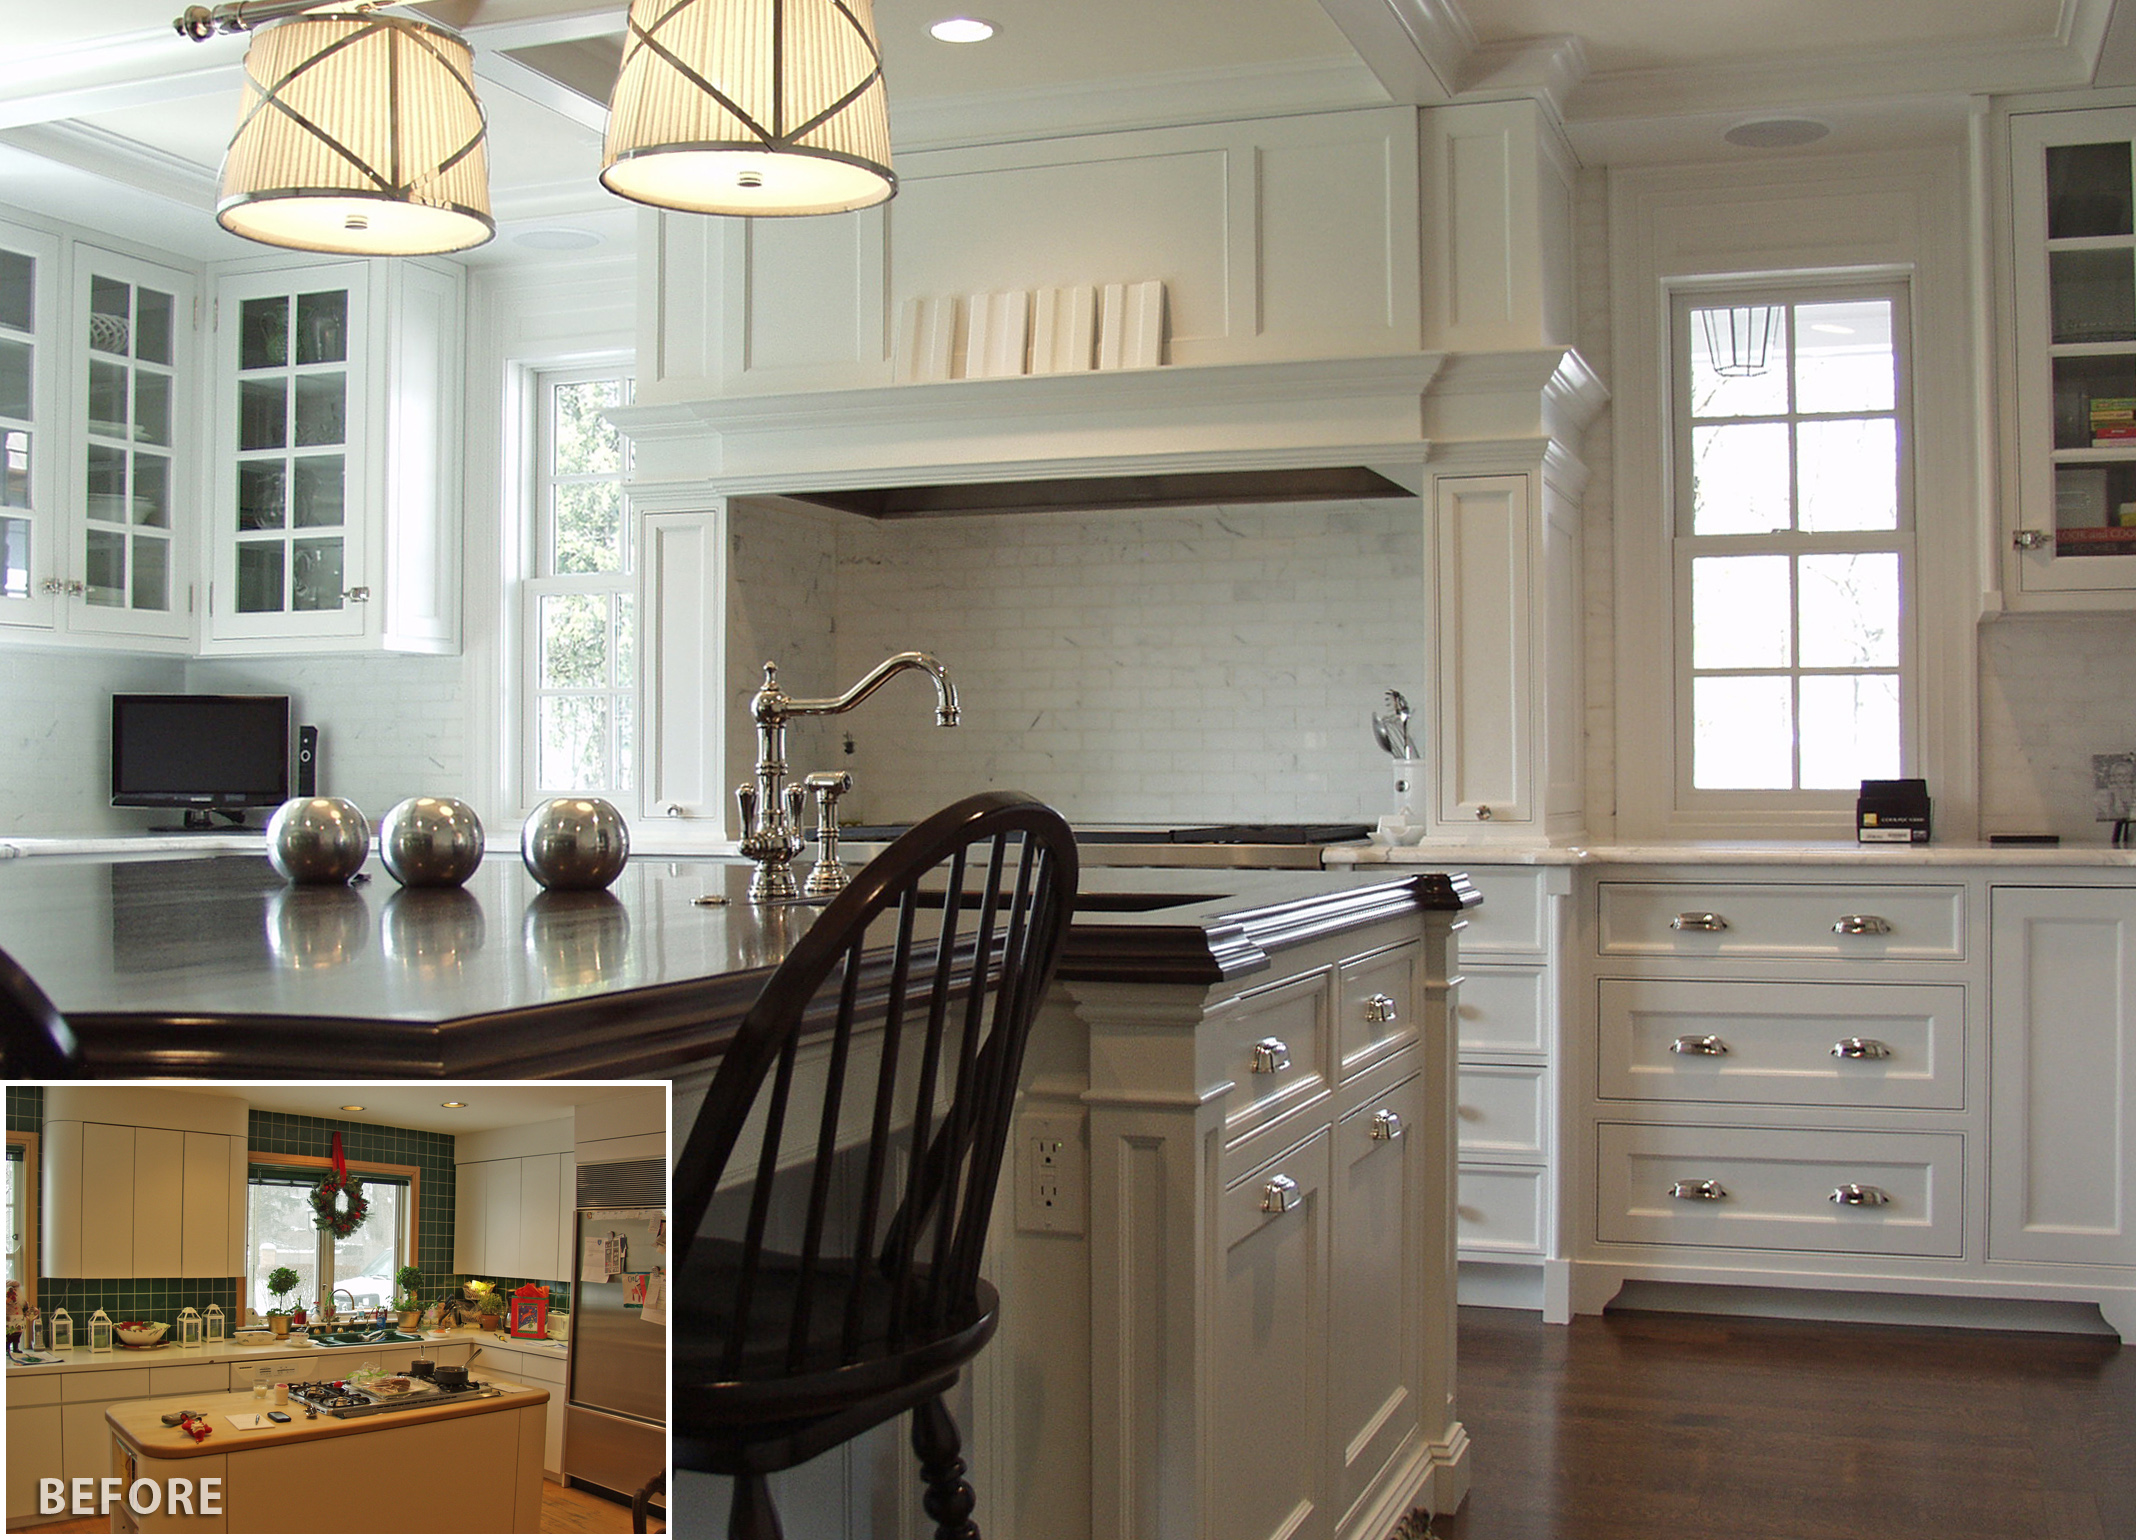 Kitchen Redesign Pictures North Shore Kitchen Remodels Before And After Benvenuti